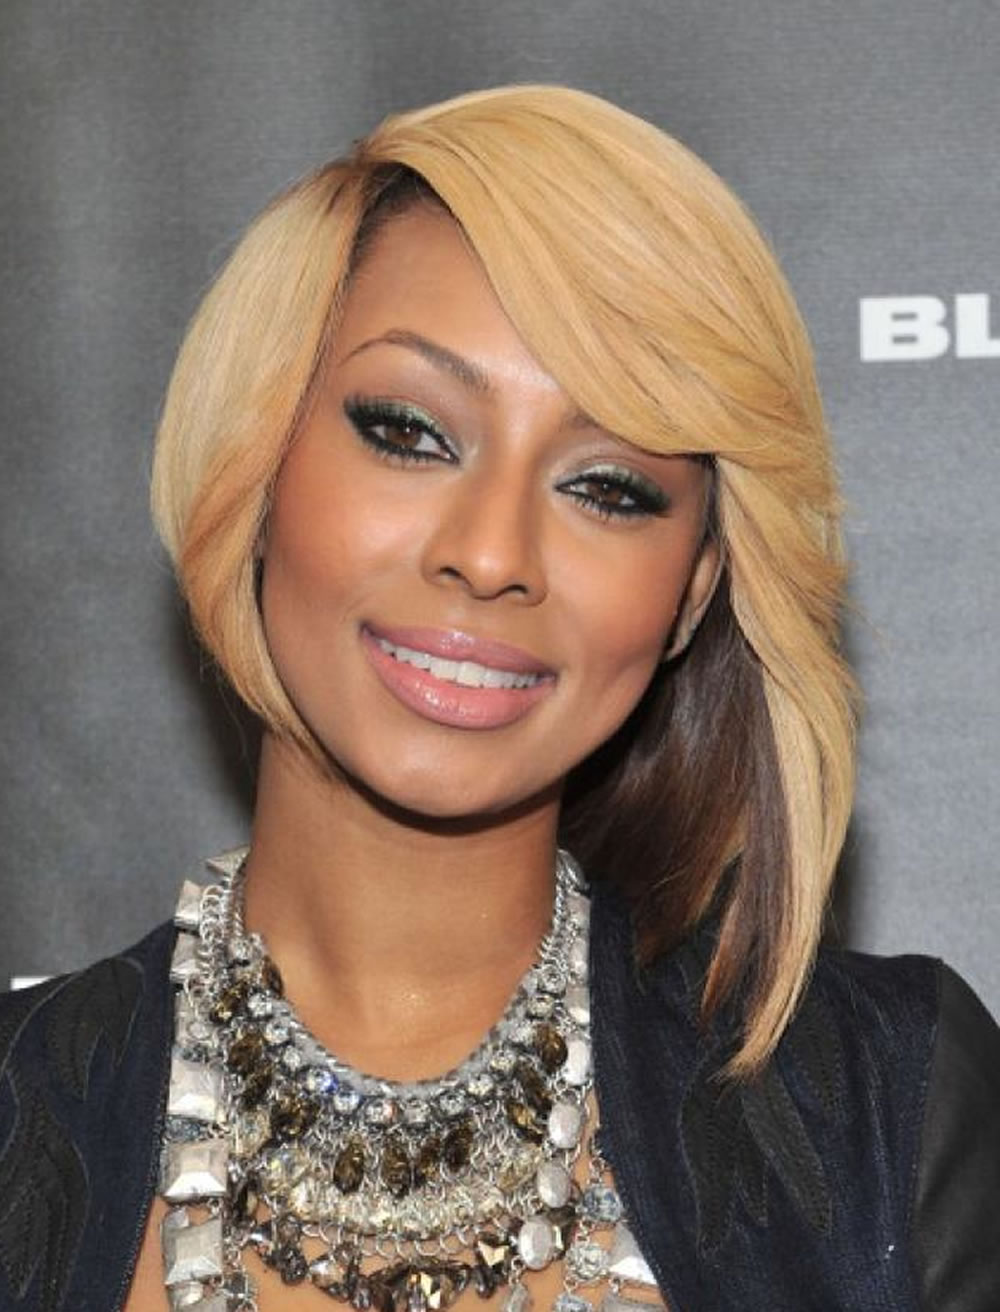 Crooked-Layered-Bob-Hairstyle Bob Hairstyles for Black Women for Rocking Look